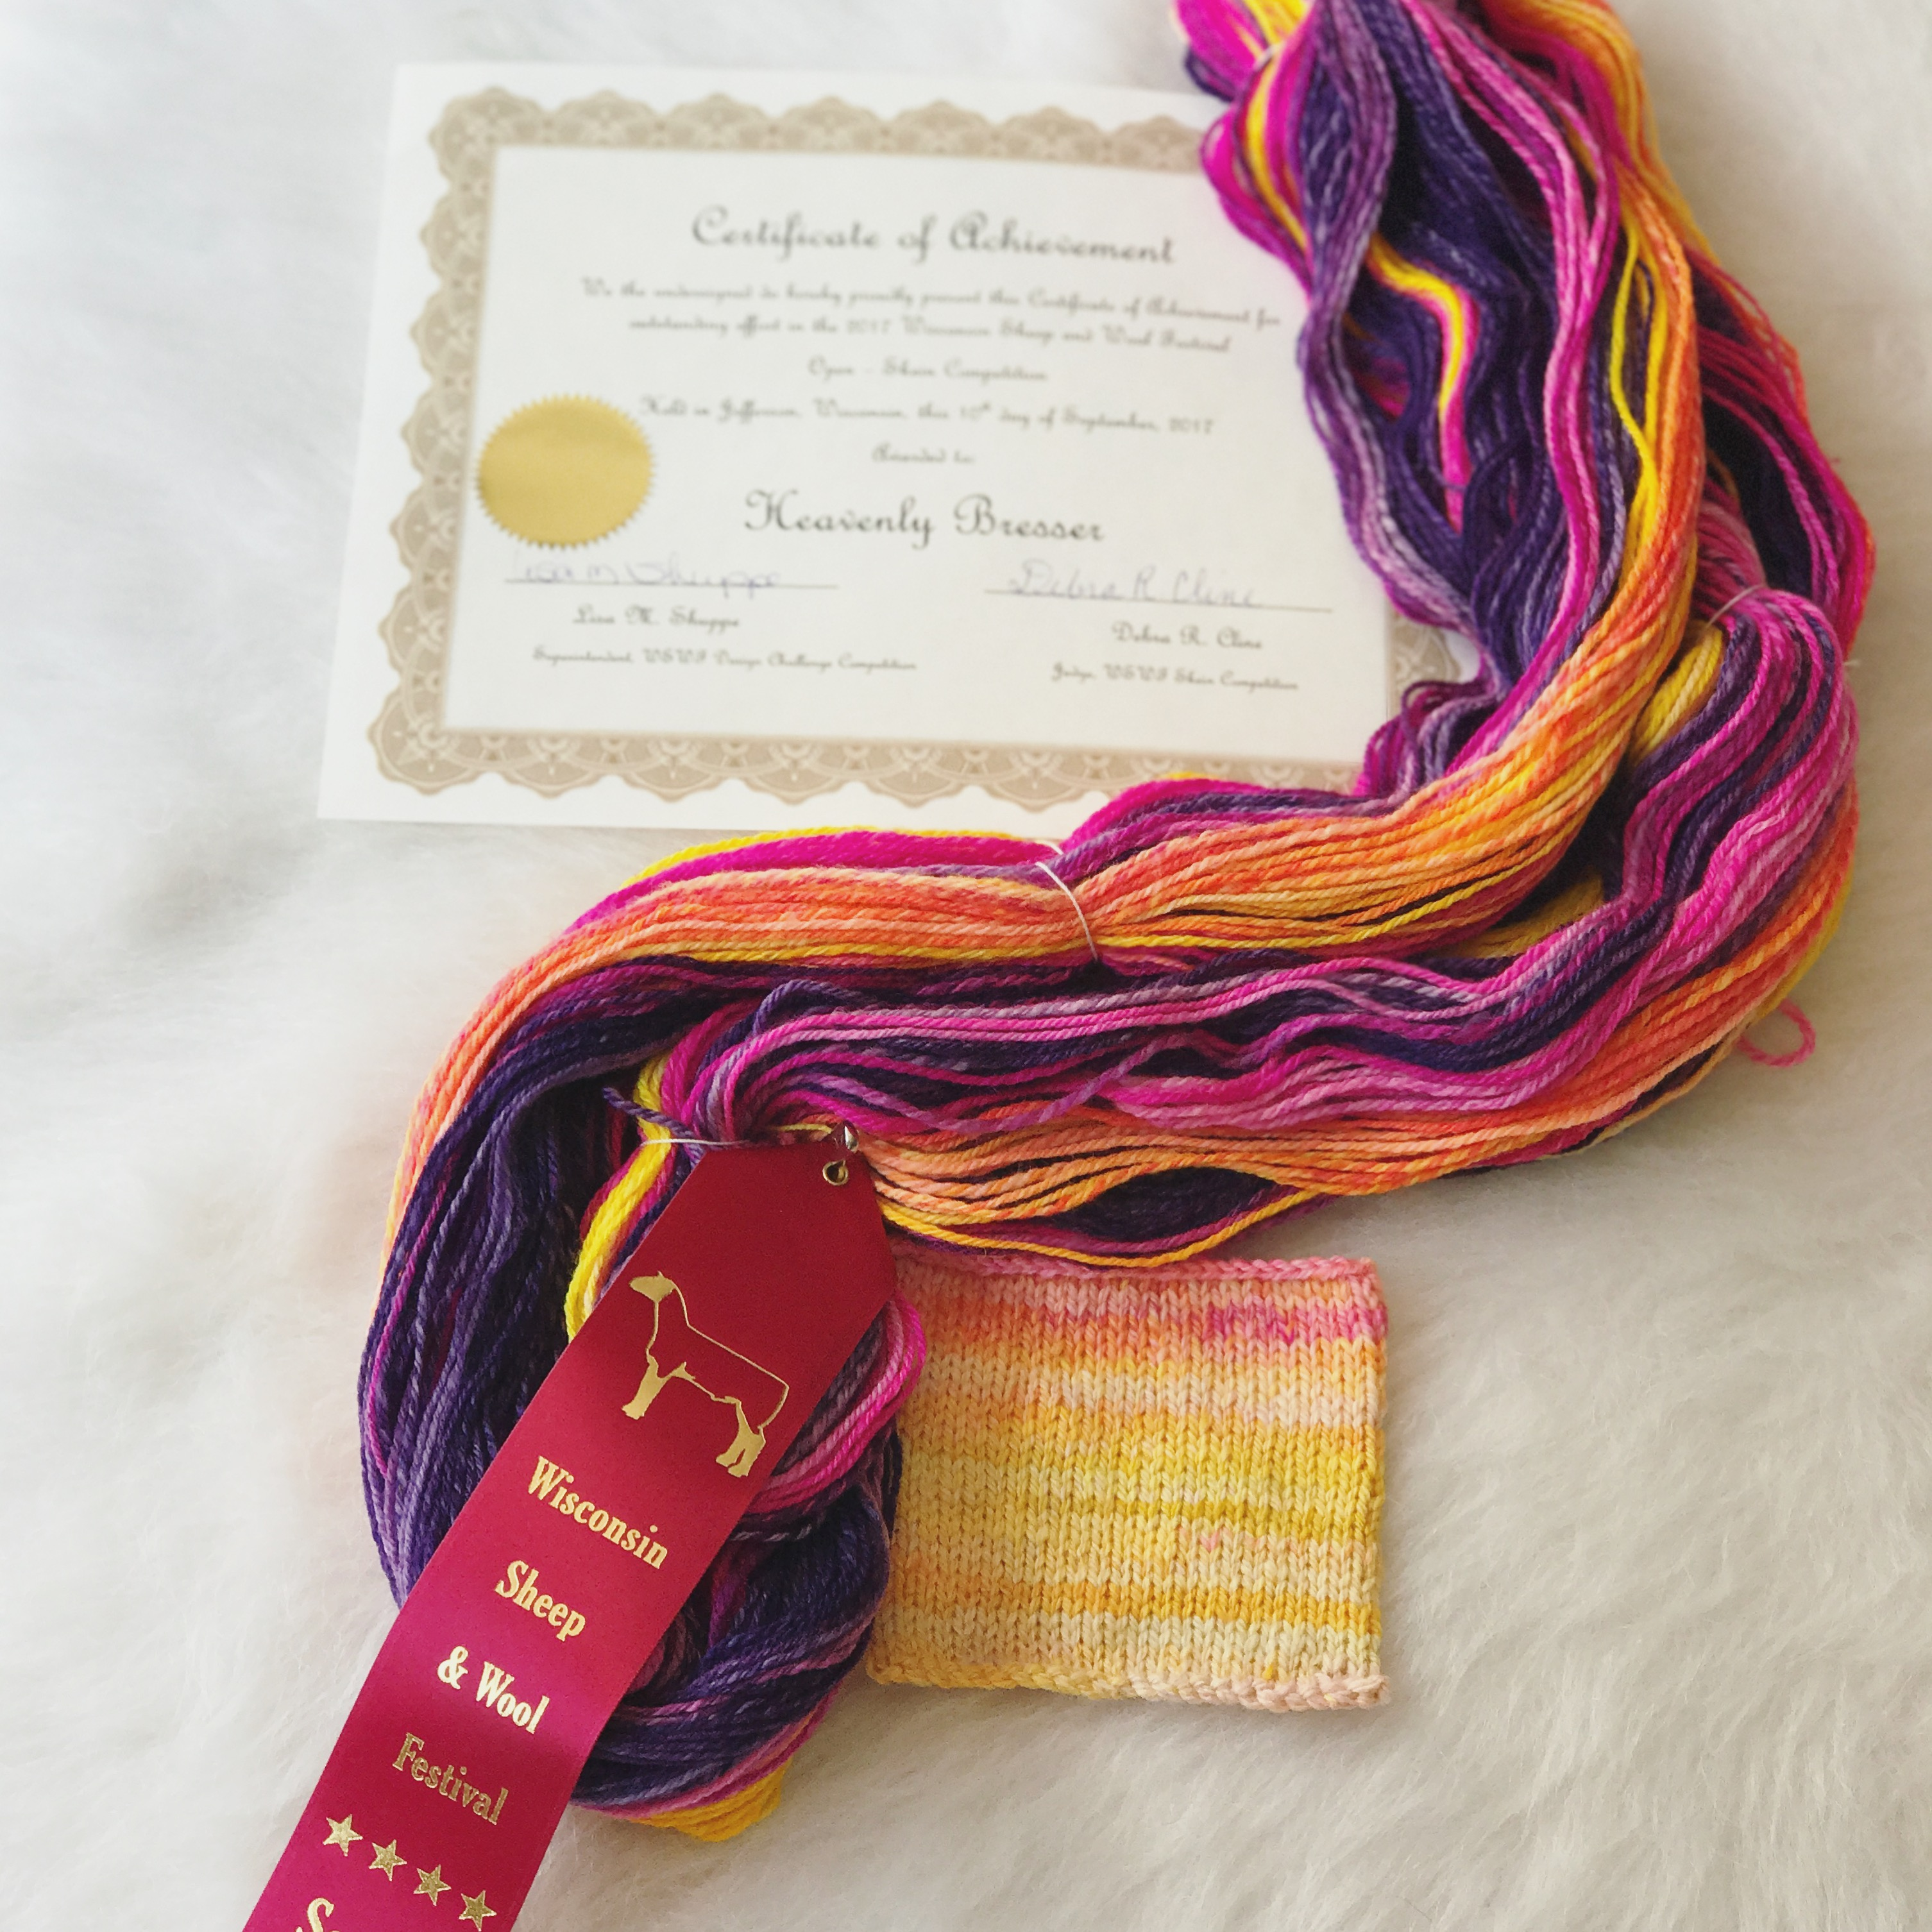 My First Skein Competition